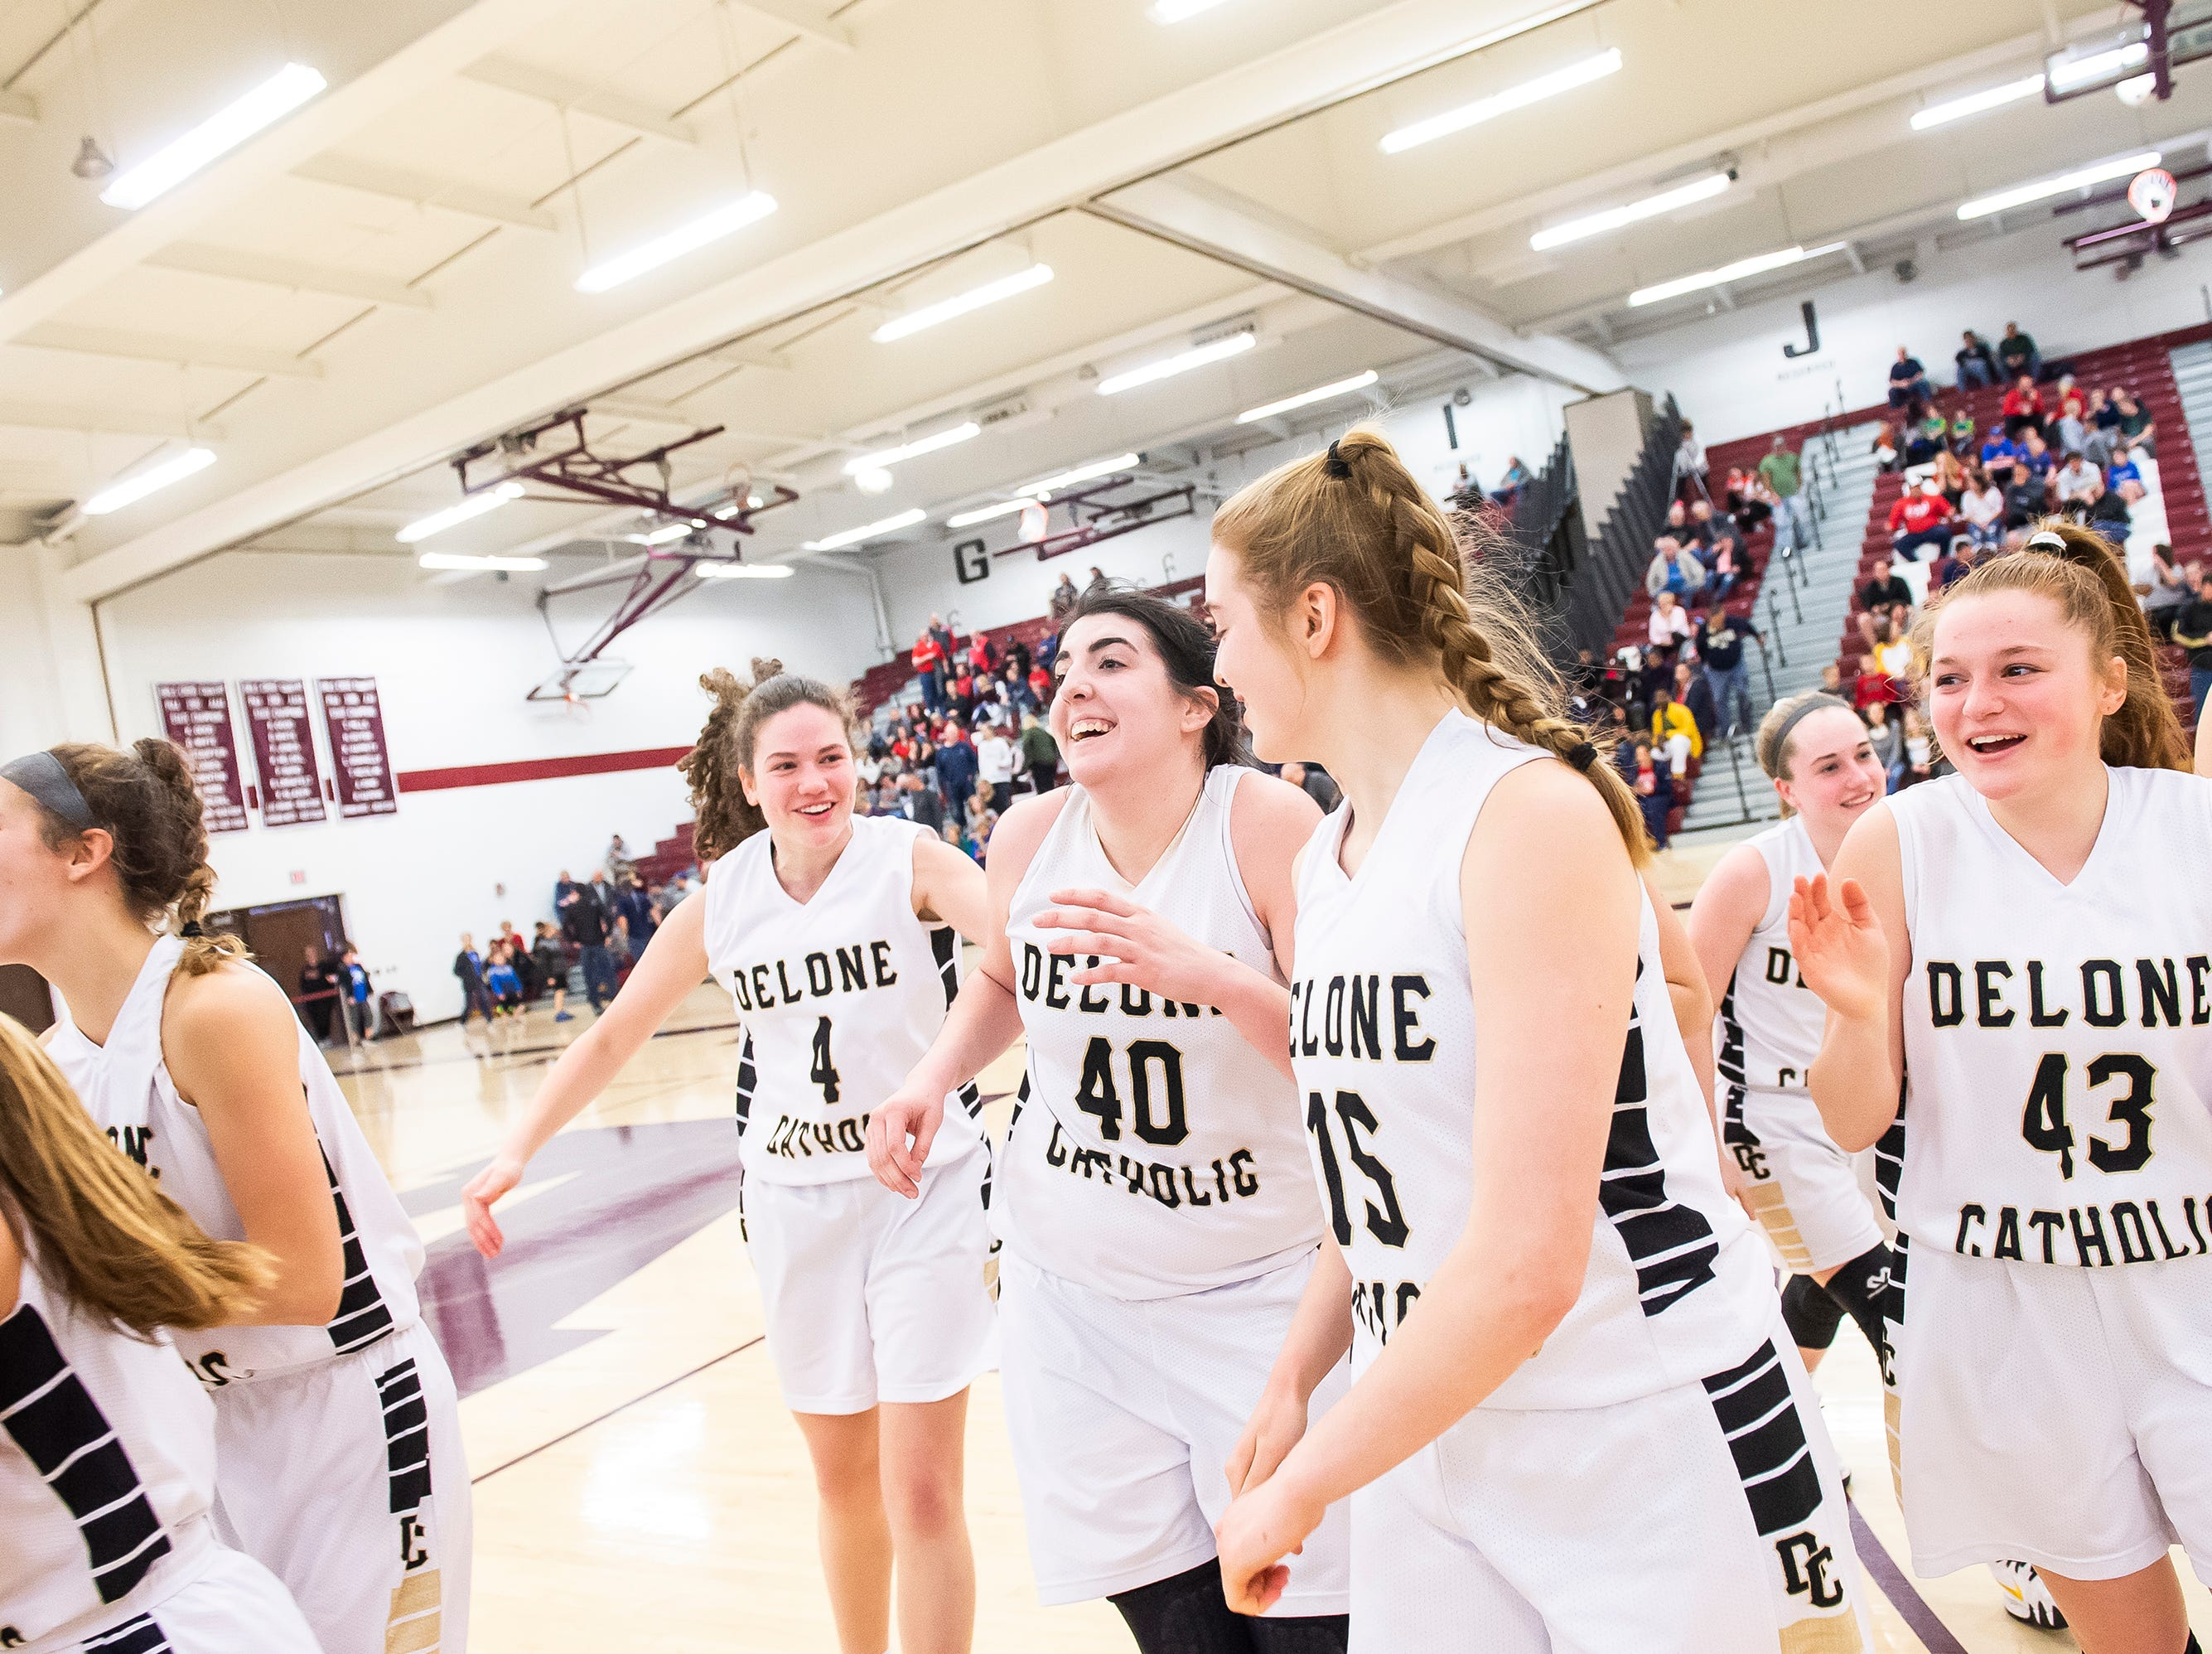 The Delone Catholic Squirettes celebrate after coming back to beat Neshannock in a PIAA 3A quarterfinal in Altoona, Pa., on Friday, March 15, 2019. The Squirettes won 50-41.